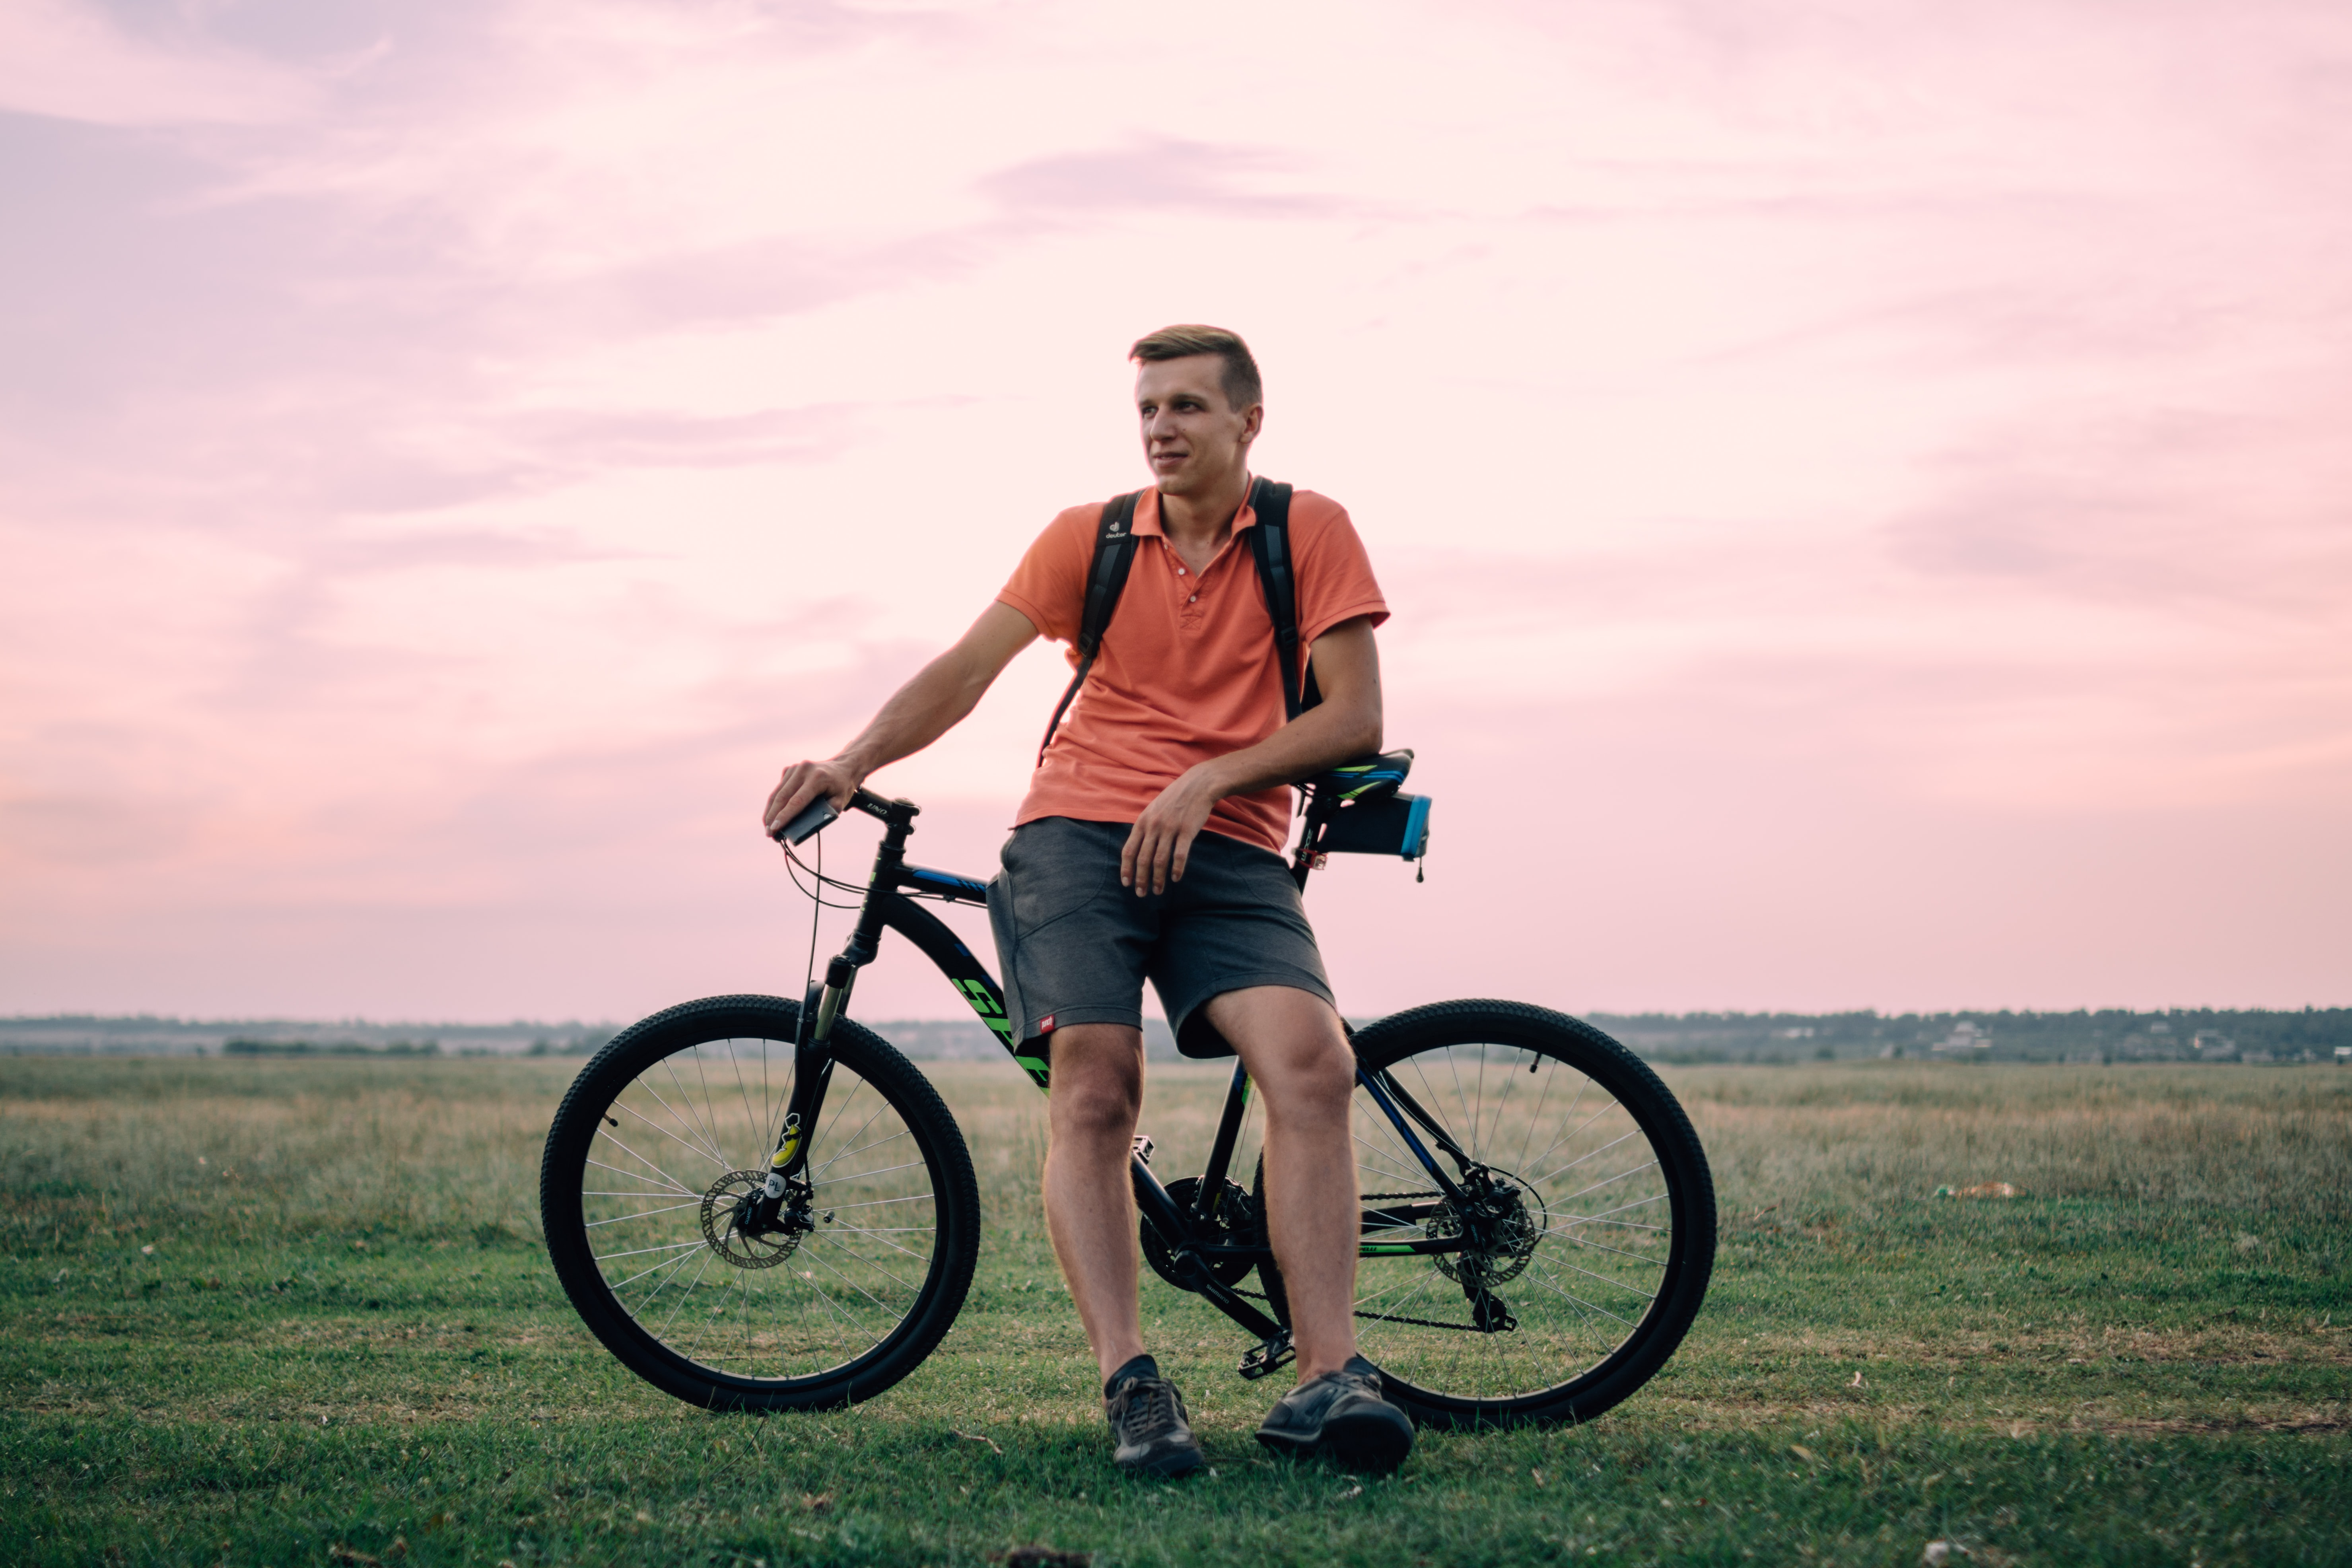 A man standing poised in a pink shirt in front of his bicycle in the country grass